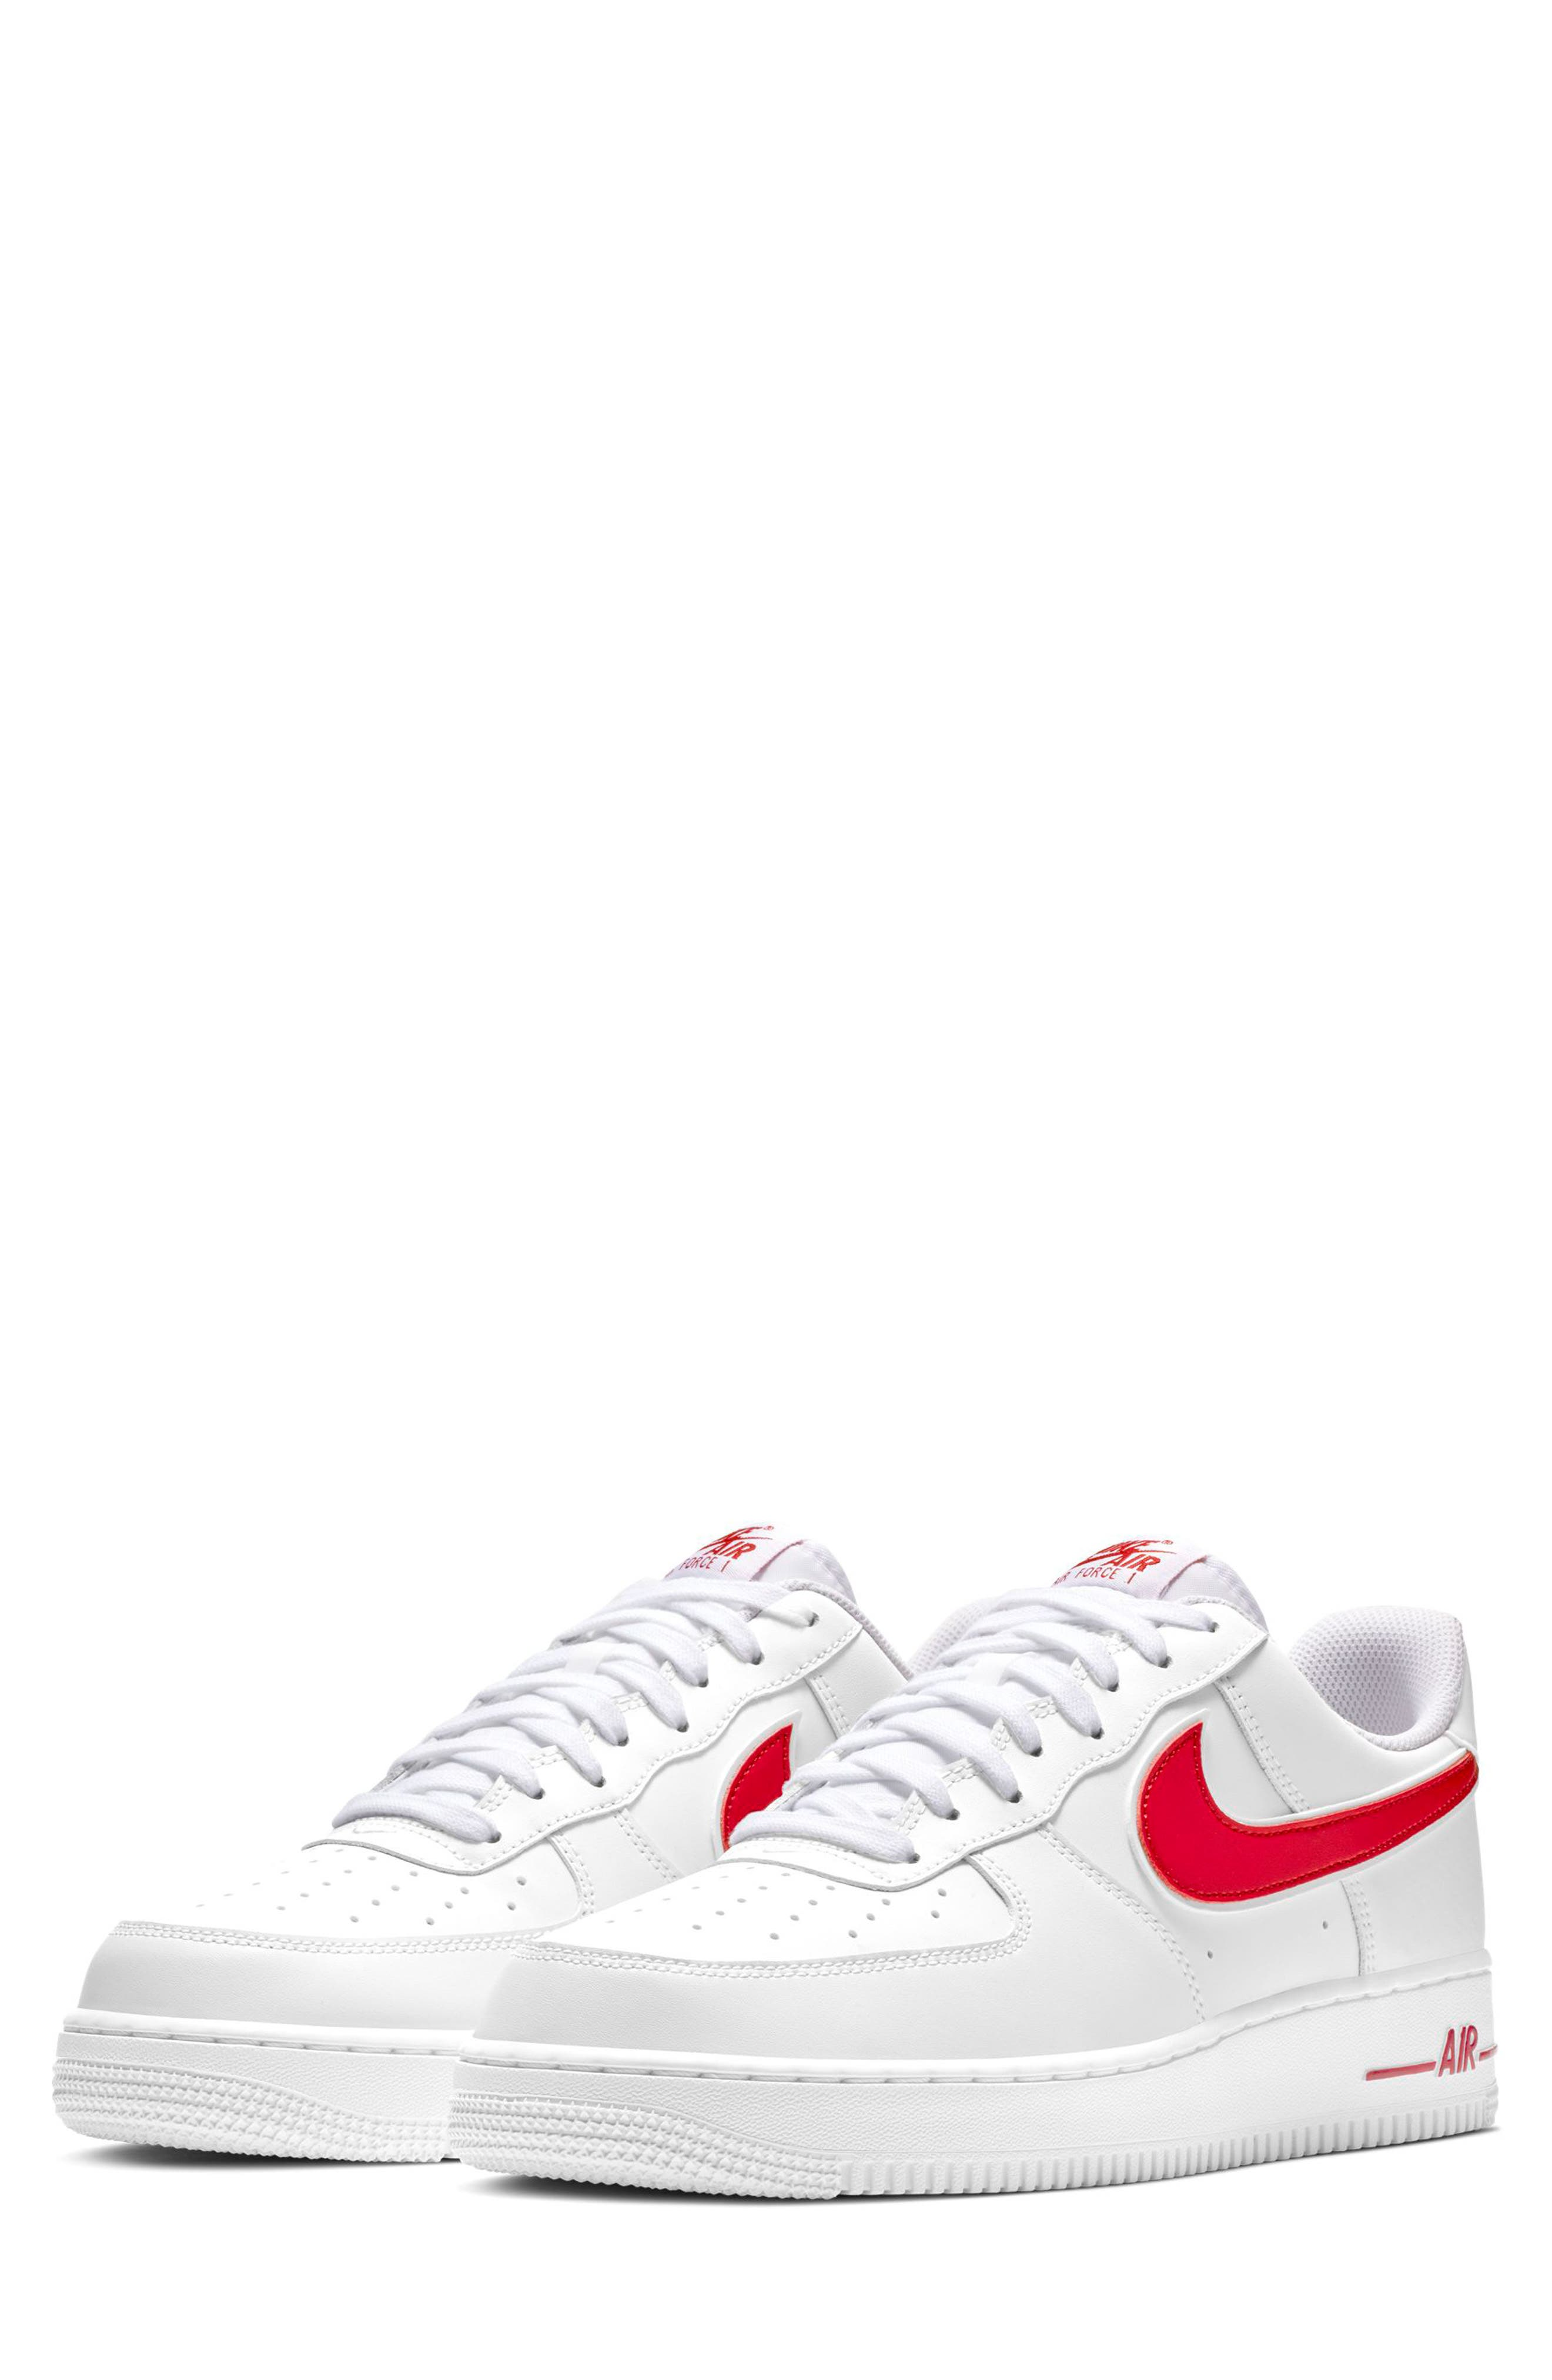 NIKE, Air Force 1 '07 3 Sneaker, Main thumbnail 1, color, WHITE/ GYM RED